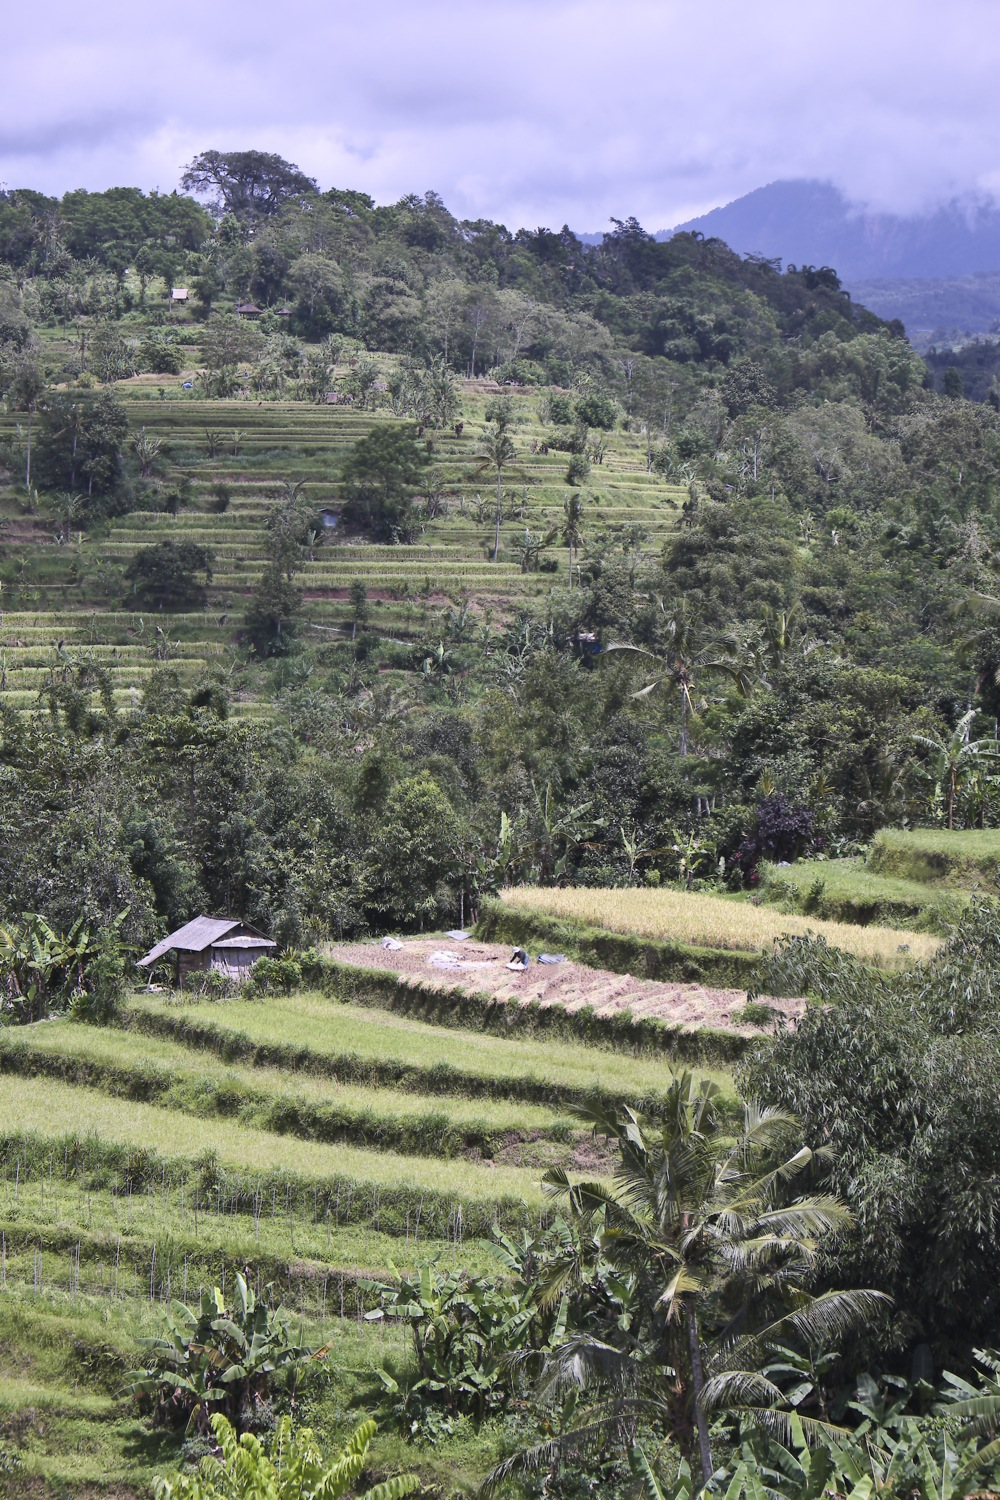 Bali terraced paddy fields